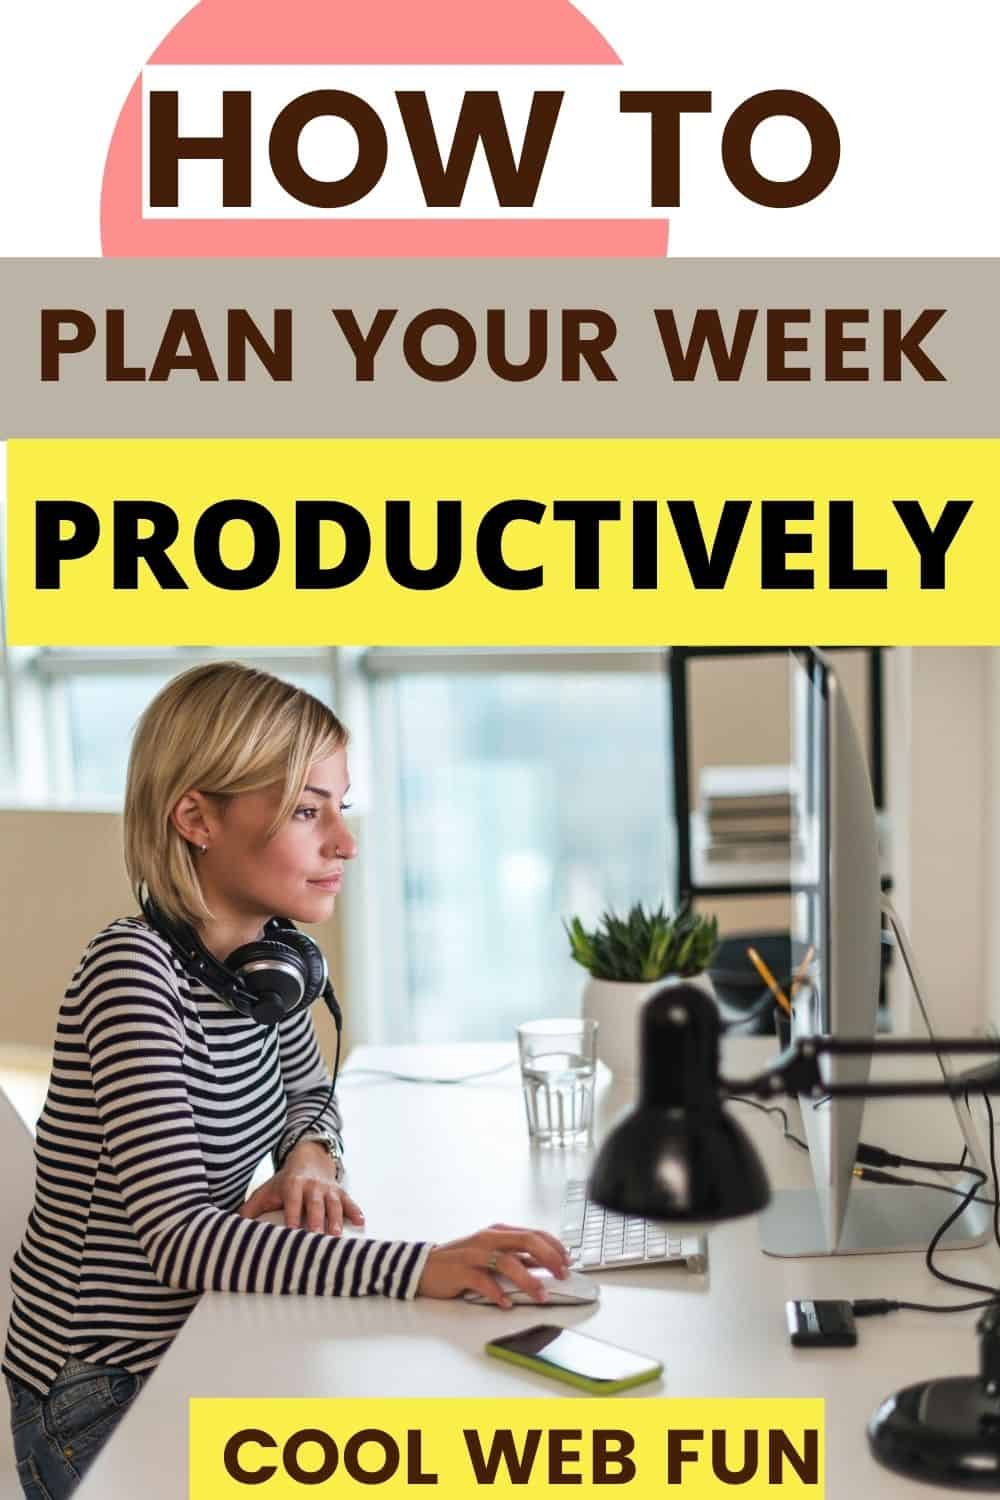 PLAN YOUR WEEK PRODUCTIVELY